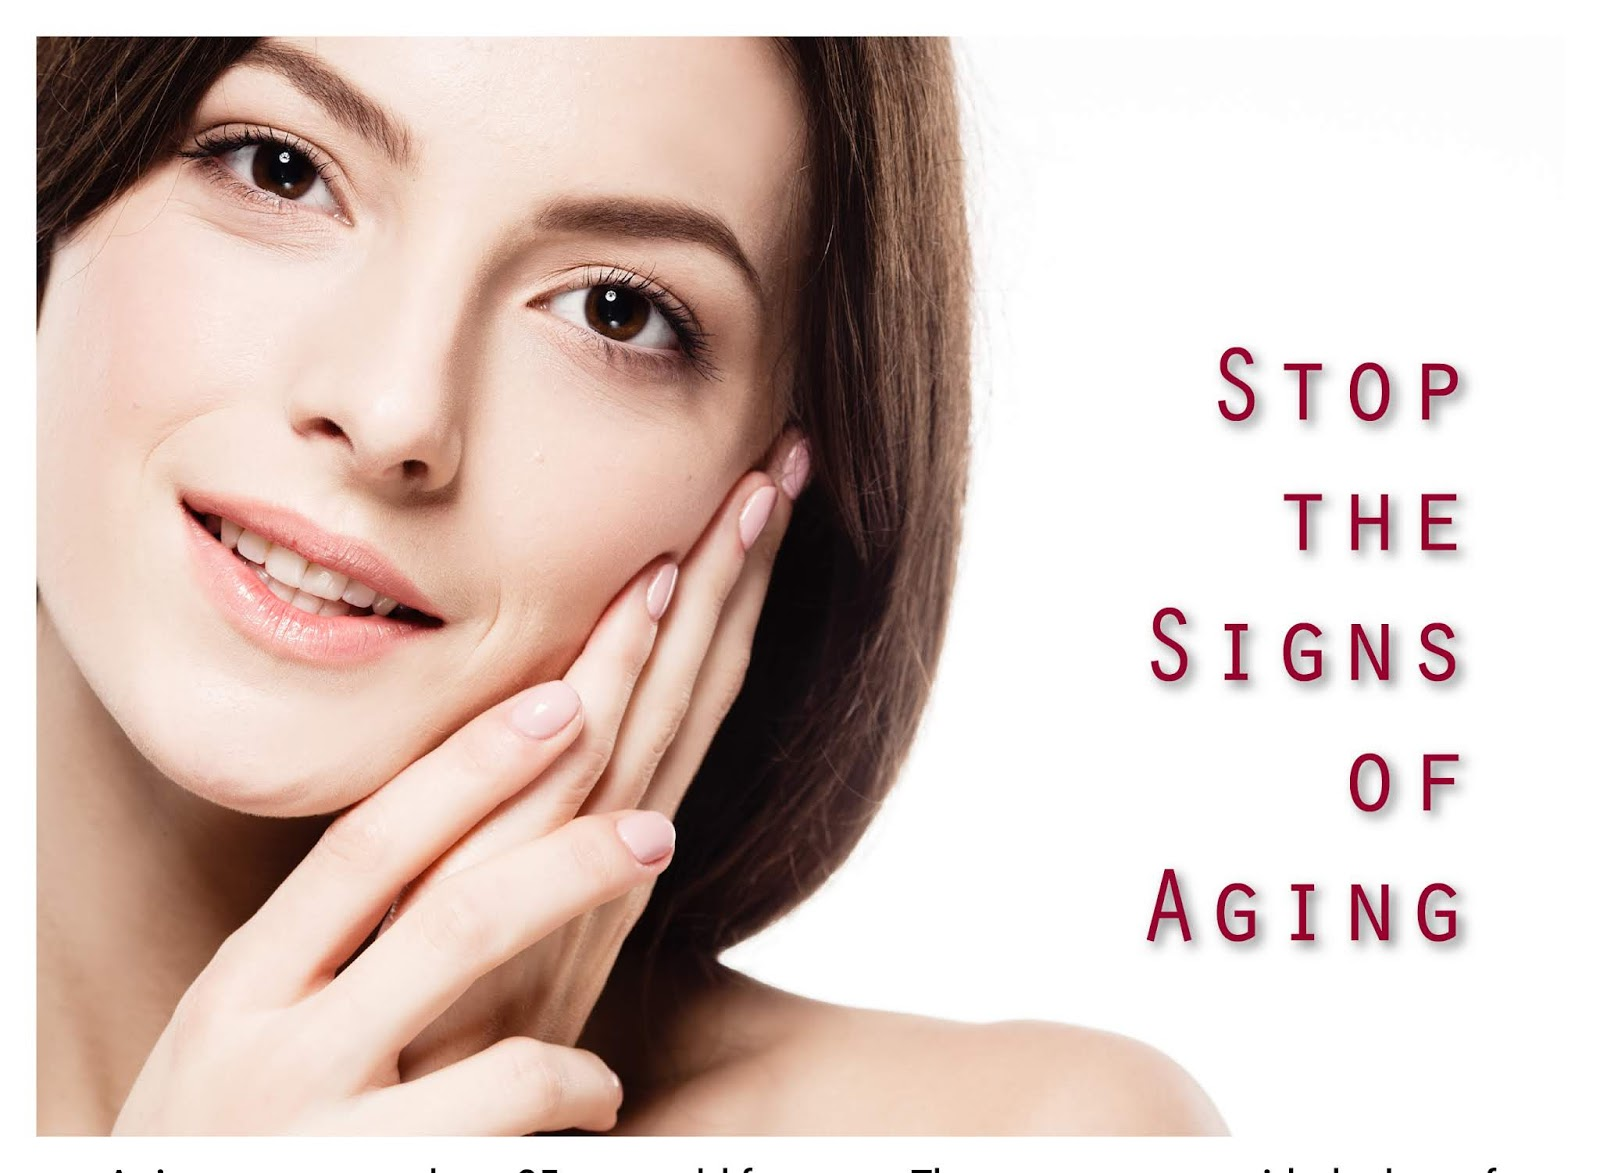 Stopping the Signs of Aging Skin